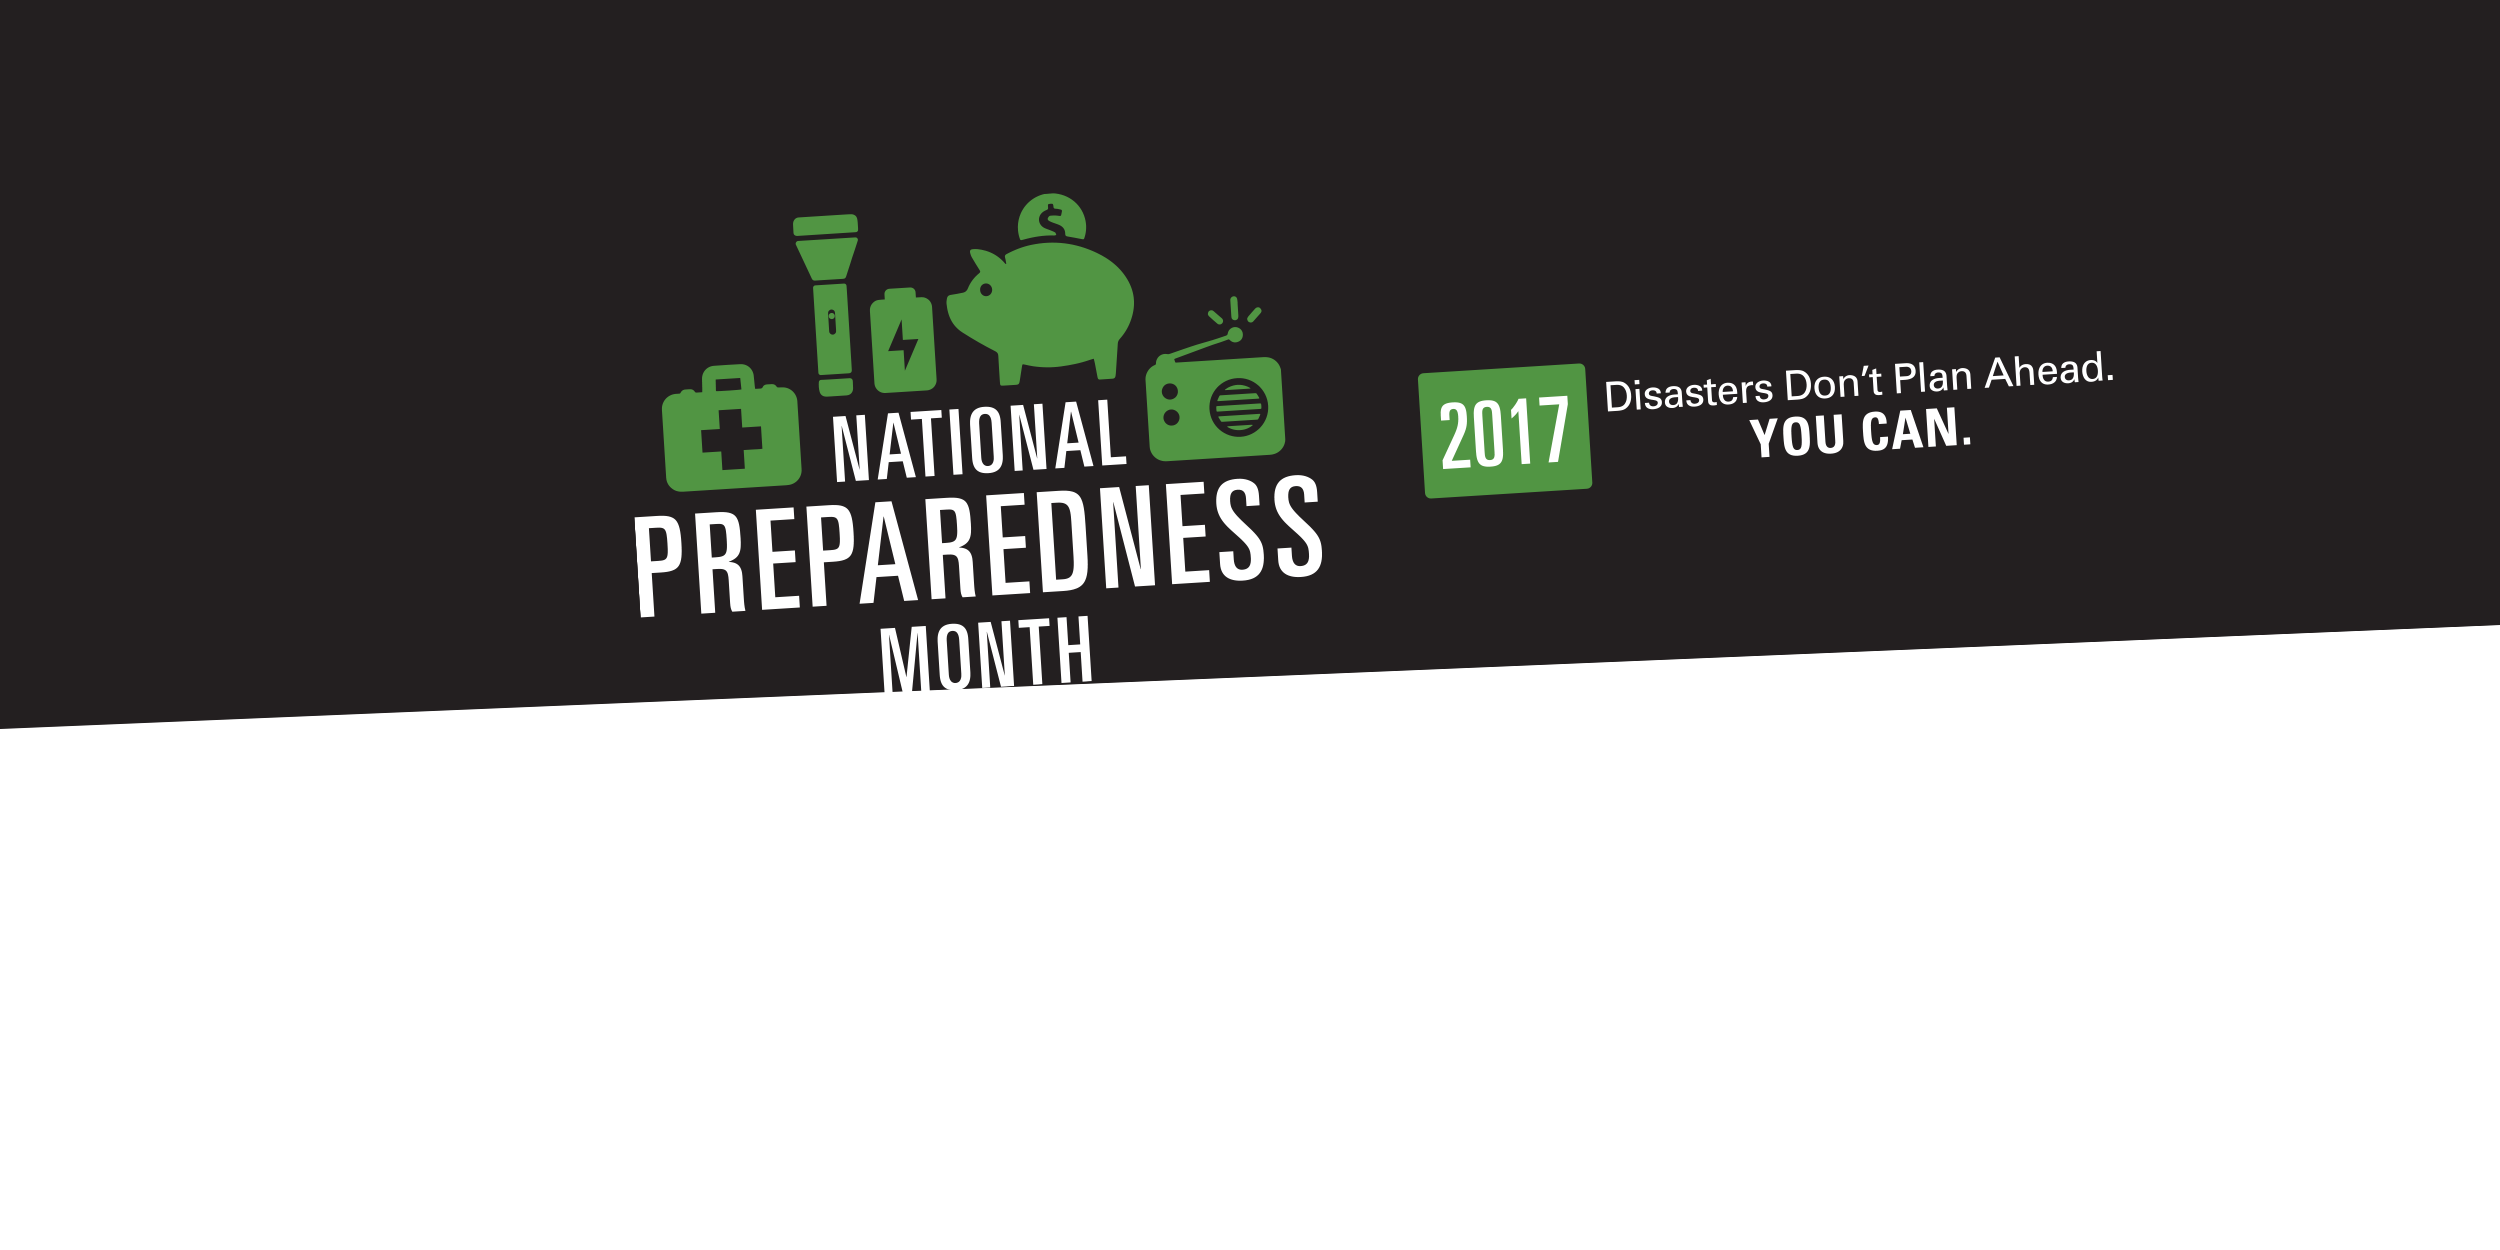 Graphic image of the green 2017 National Preparedness Month logo on a black background.